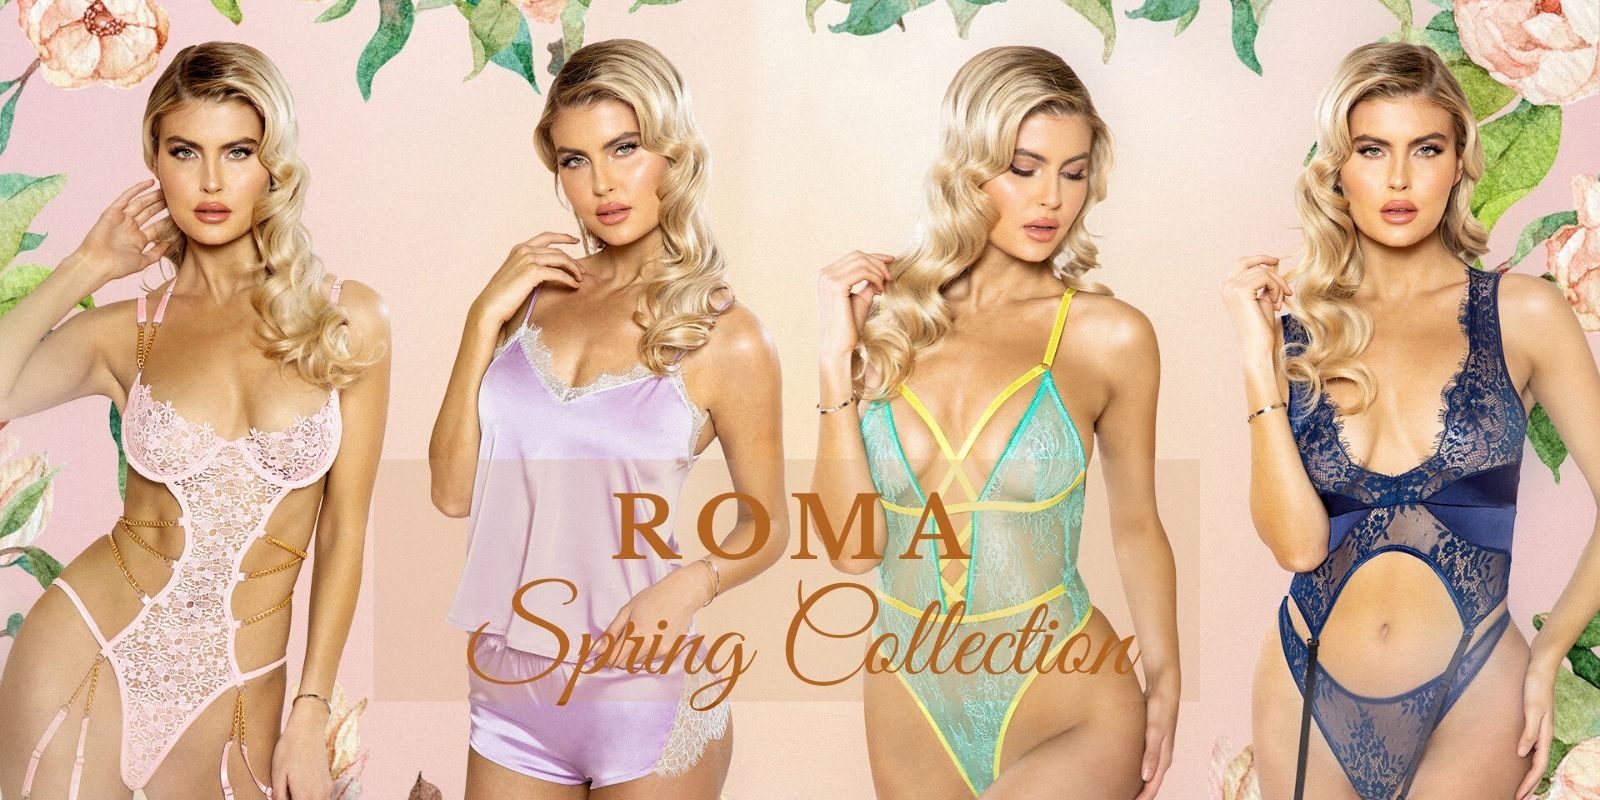 Roma Spring Collection 2020 - Deluge Sales